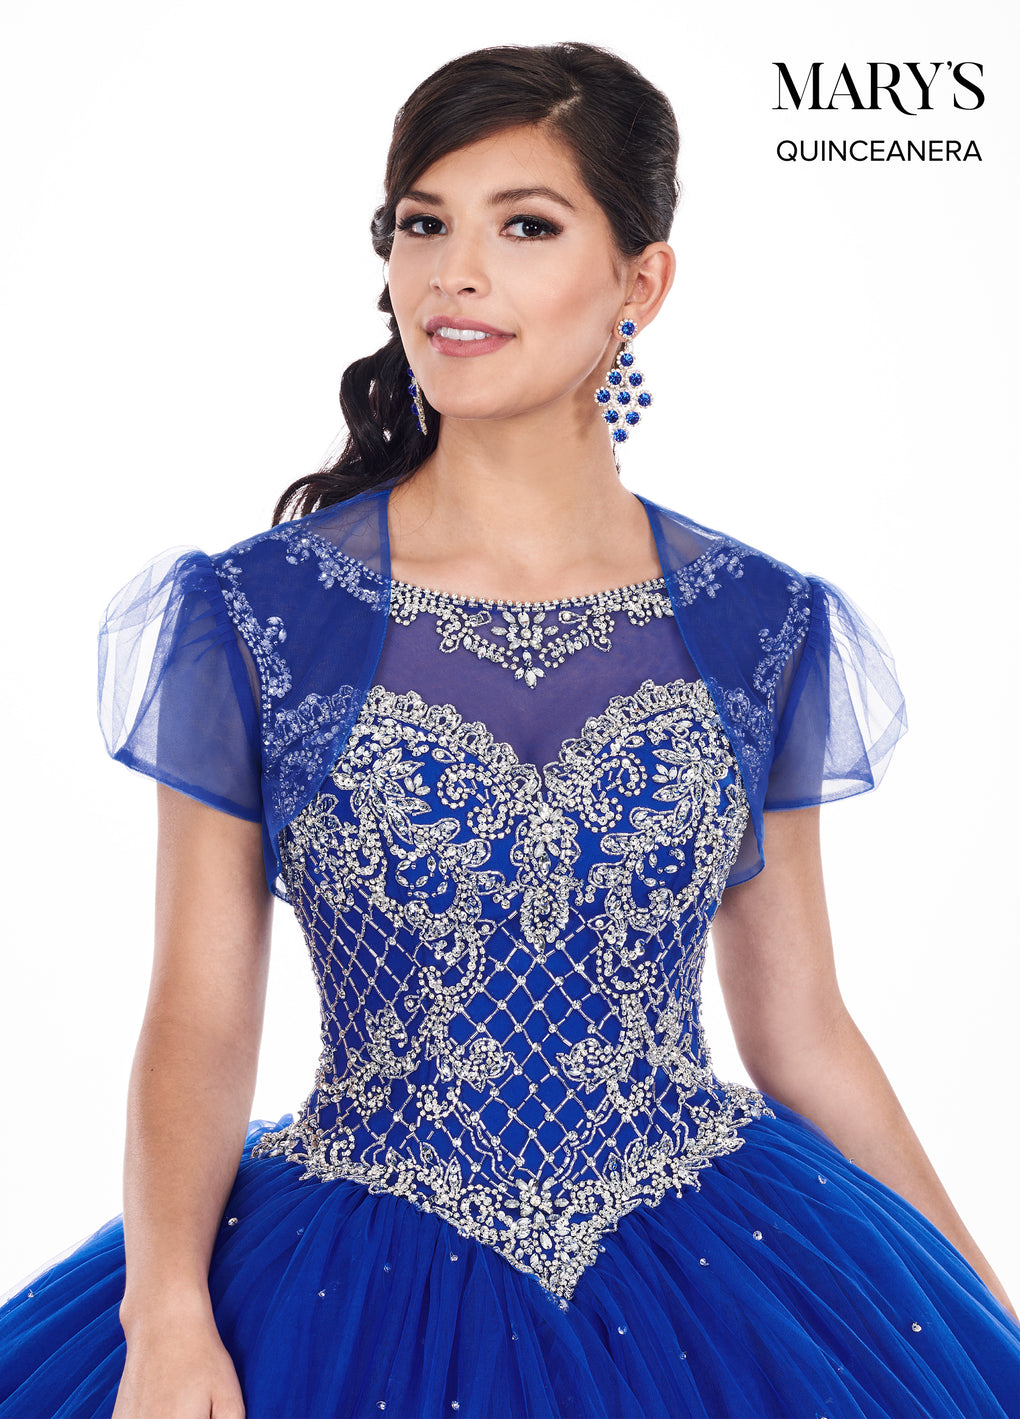 Marys Quinceanera Dresses in Royal/Silver or Peach/Rose Gold Color